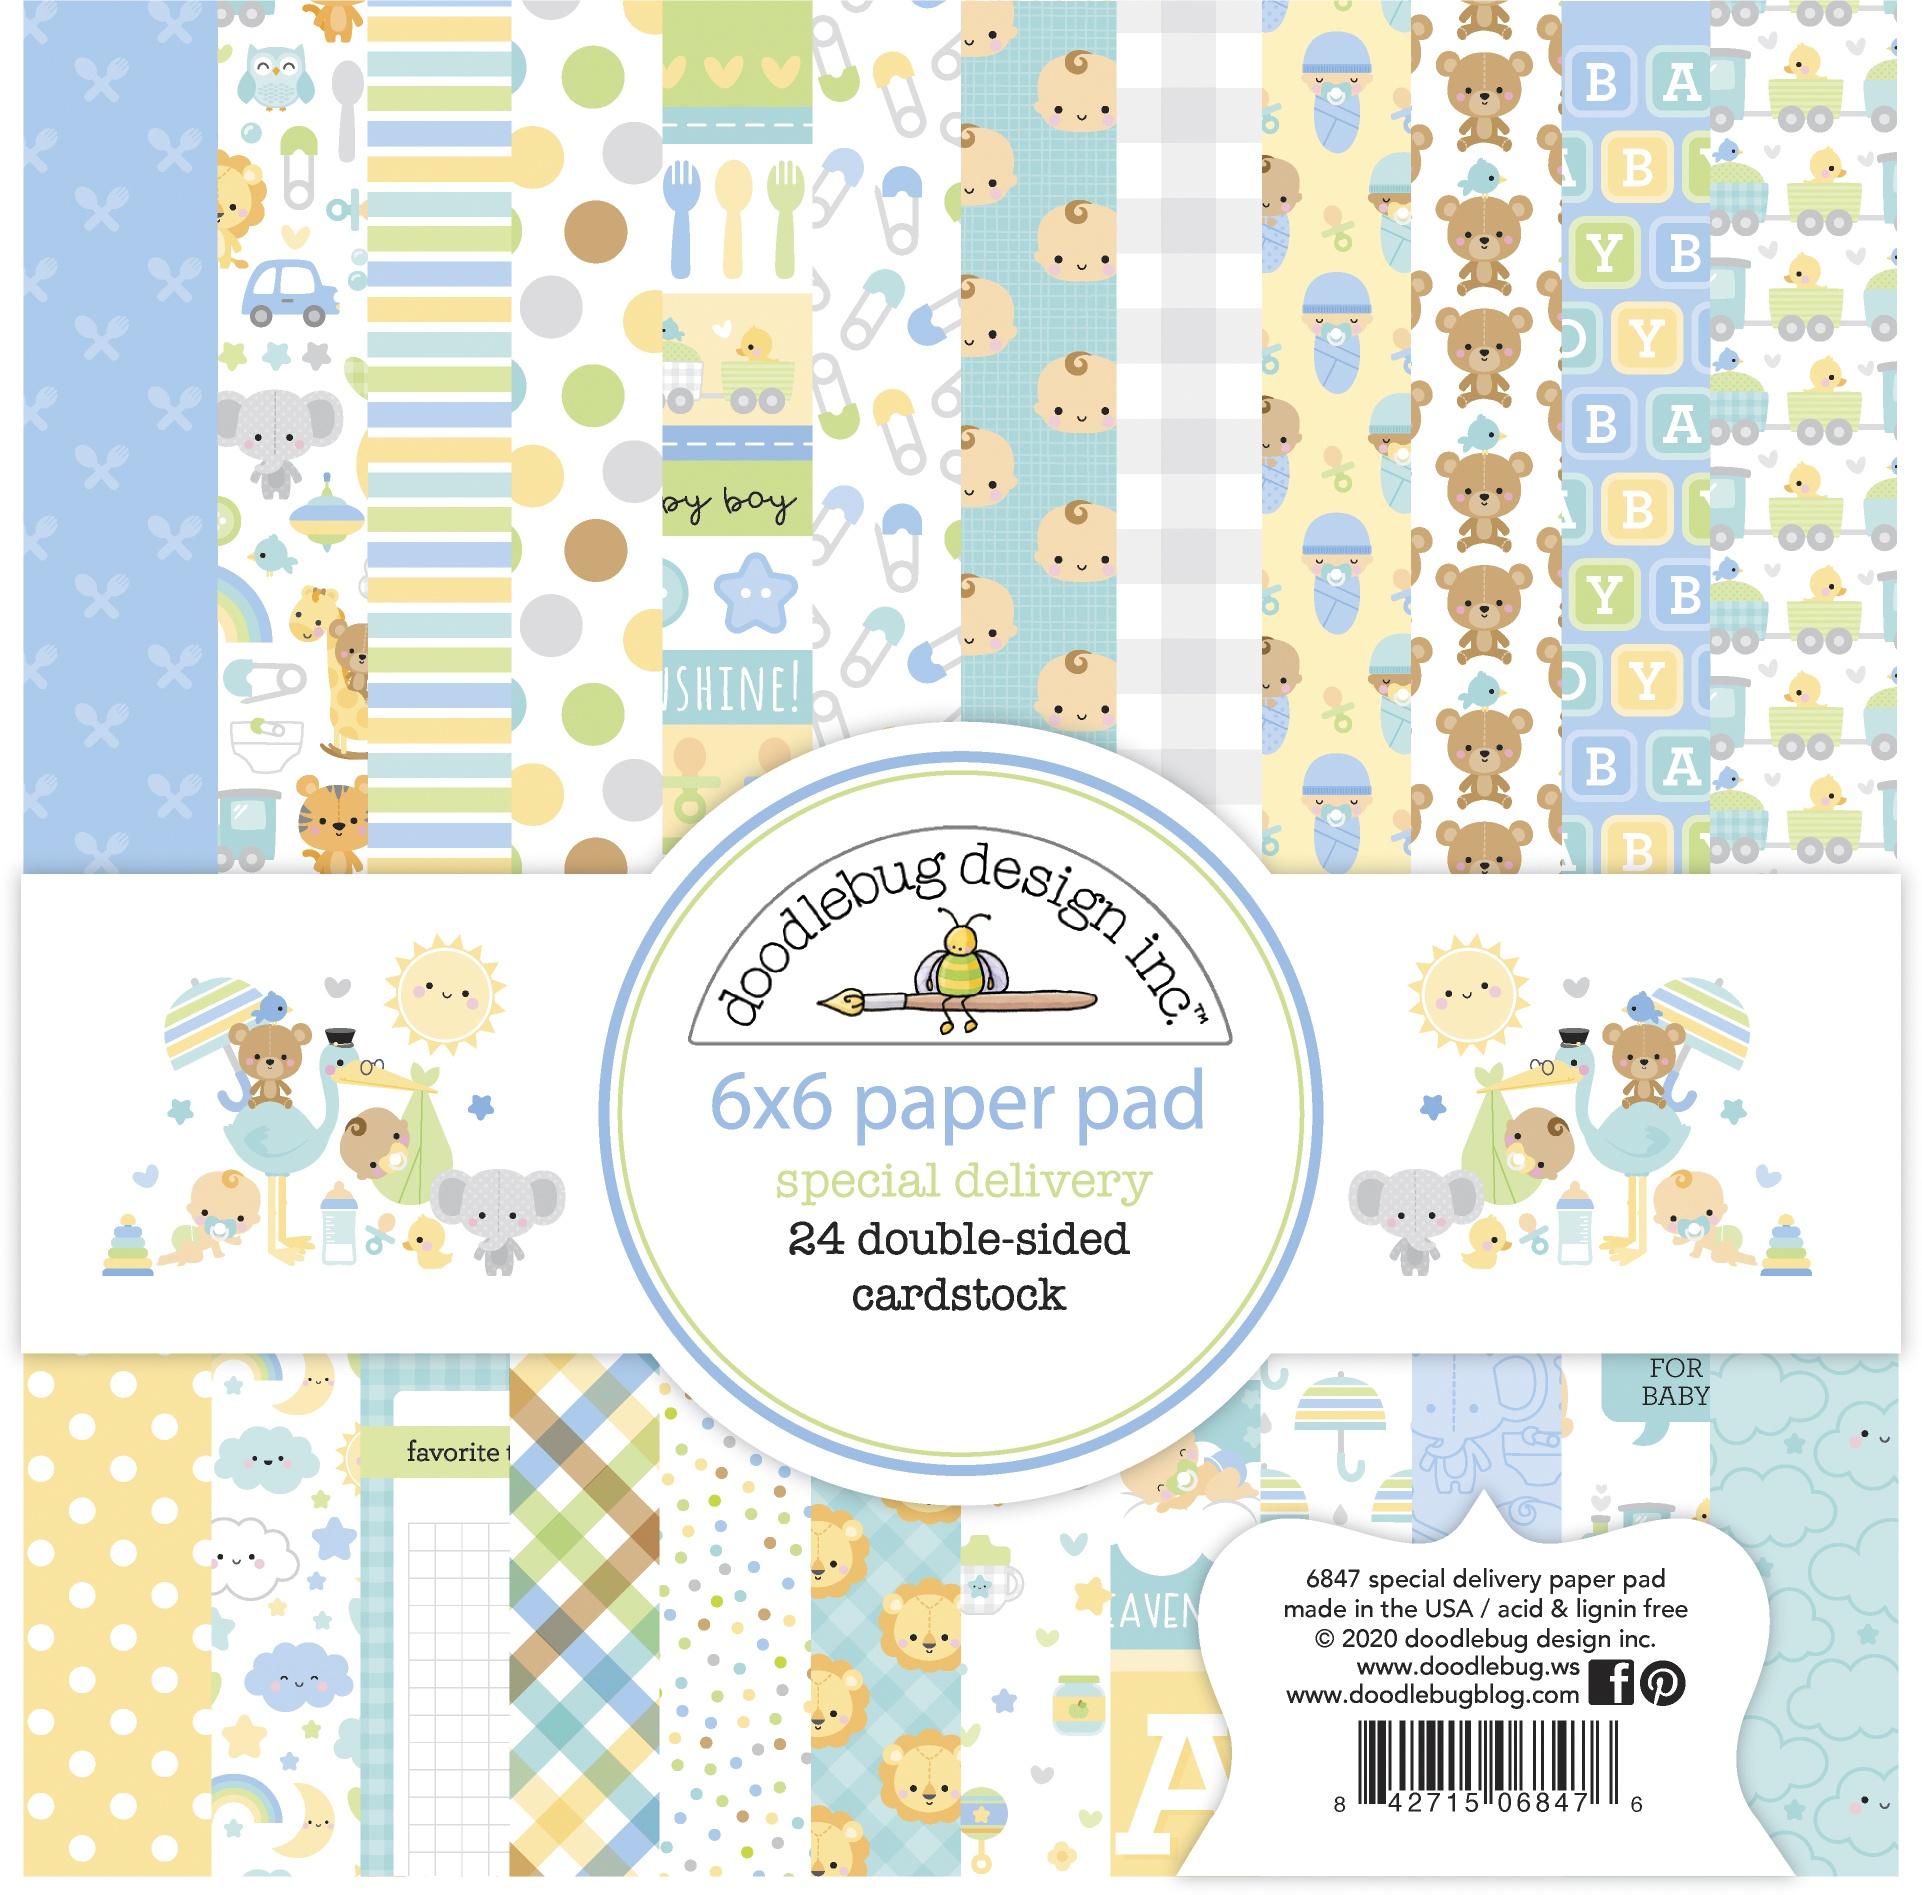 Doodlebug Special Delivery Paper Pad 6x6